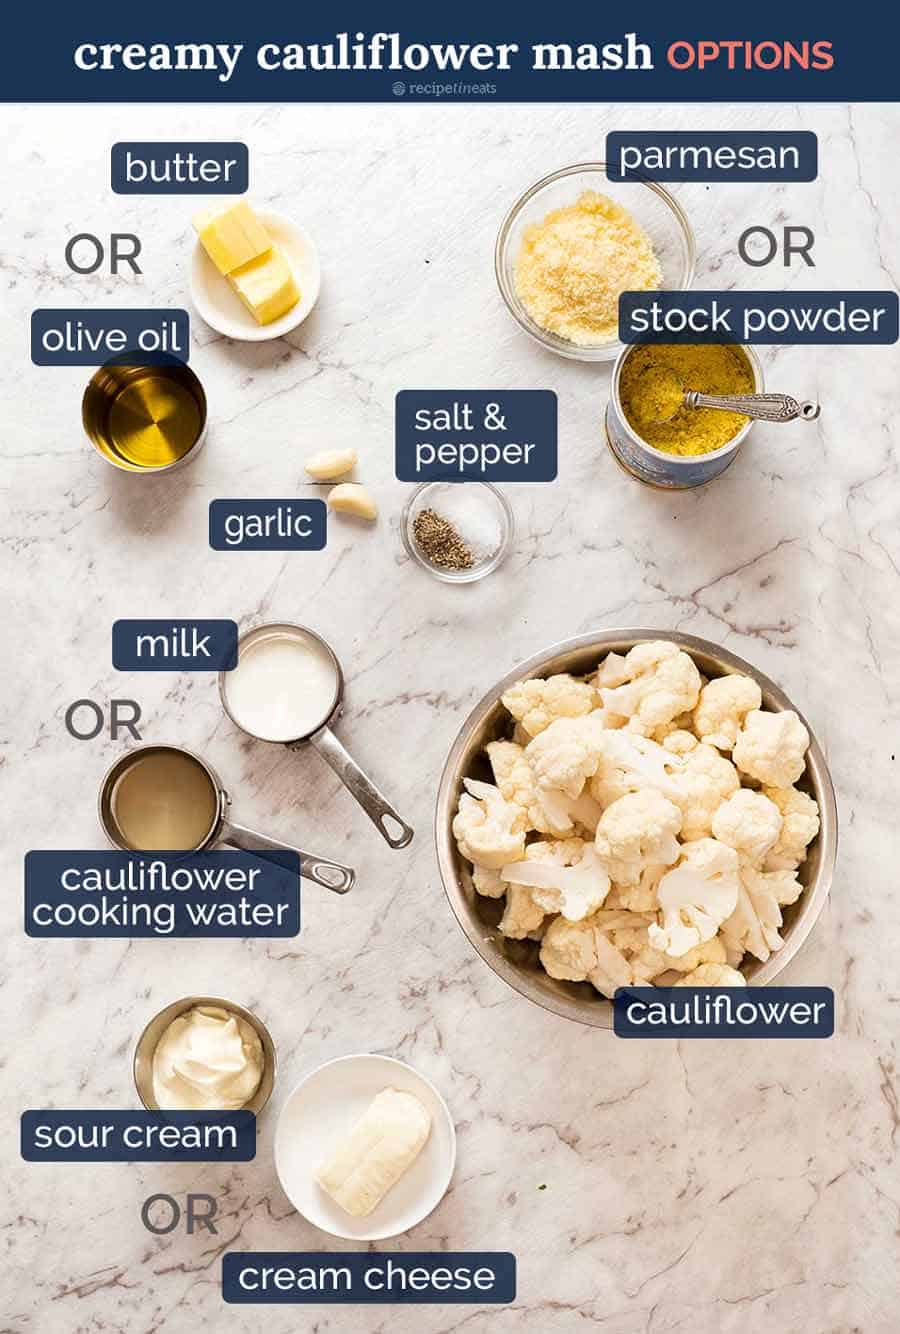 Ingredients in Creamy Mashed Cauliflower